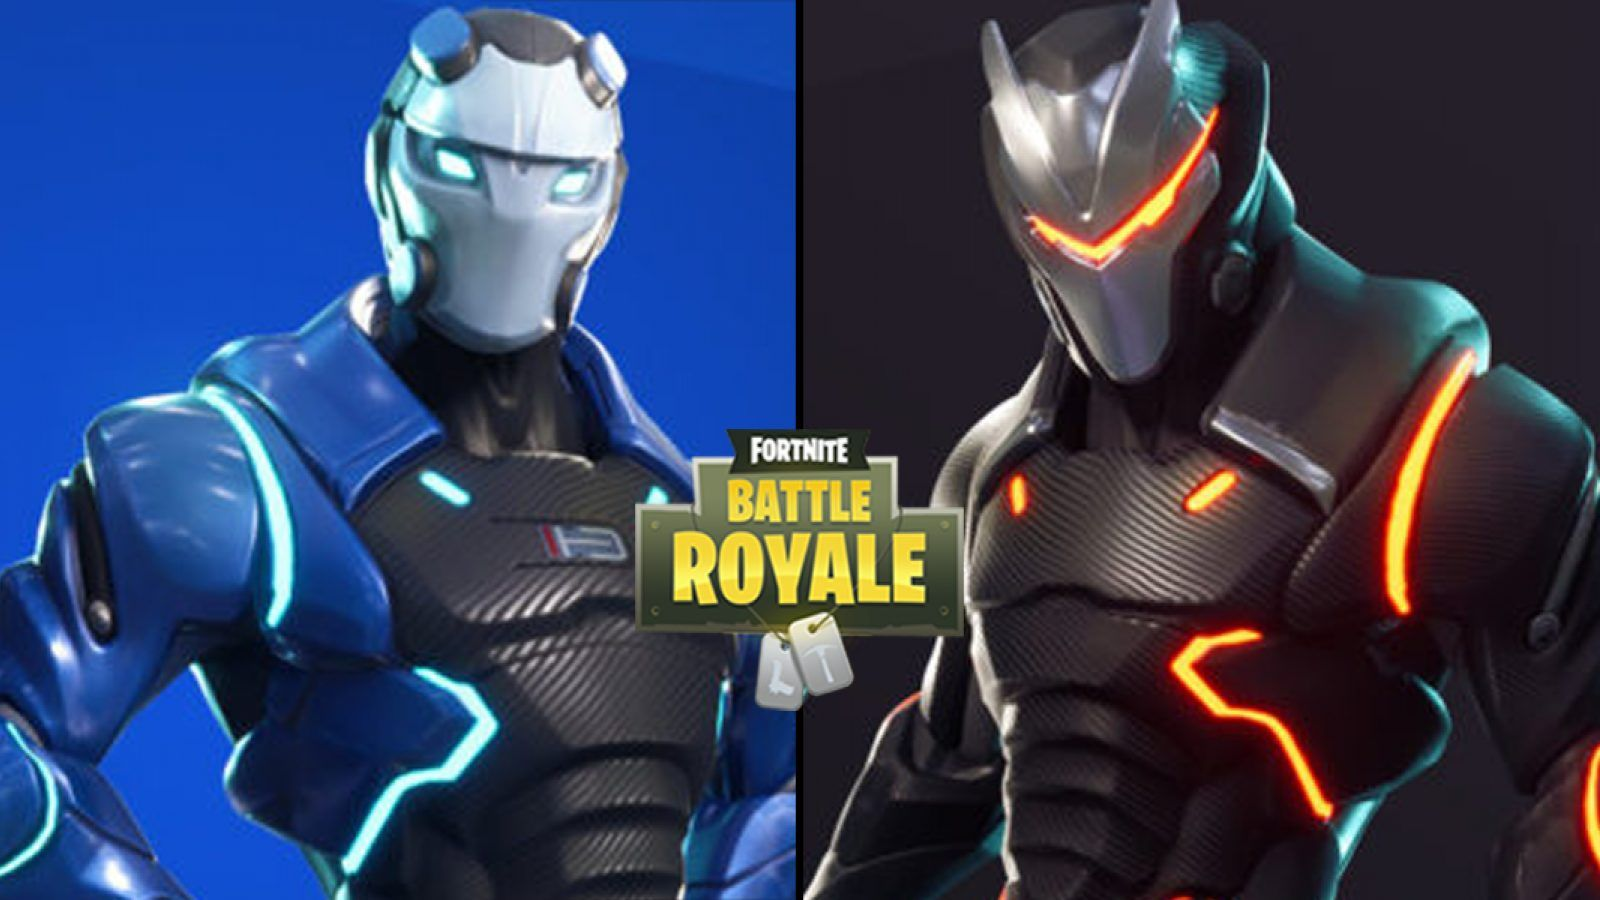 1600x900 Carbide and Omega Poster Locations for the Fortnite Battle Royale ...